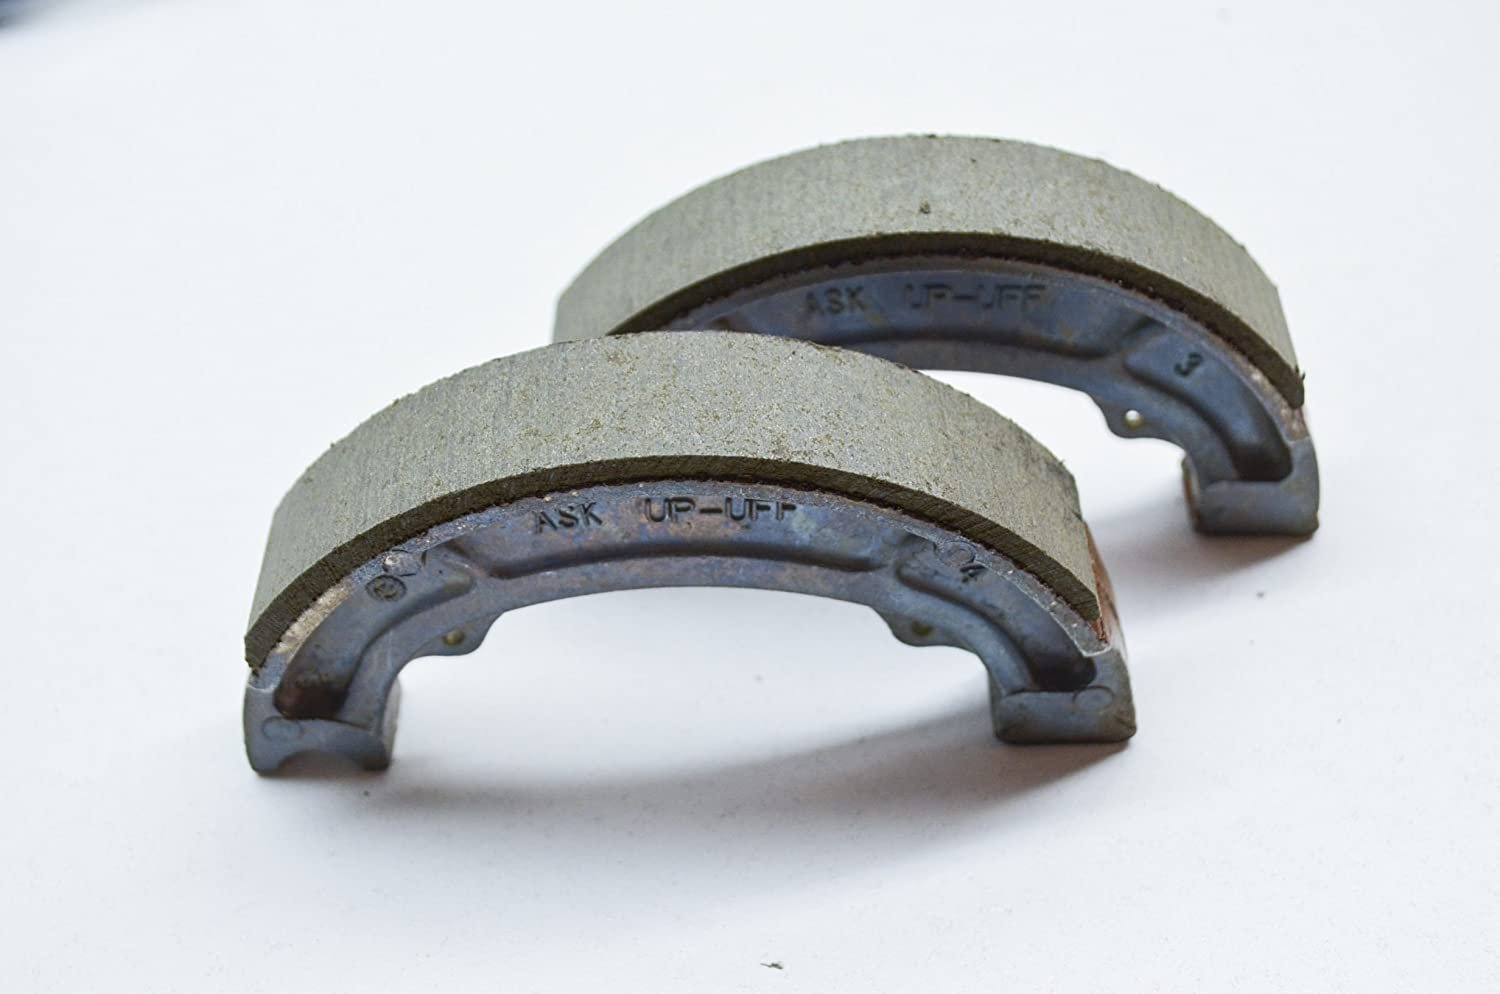 Yamaha 322-W2535-00-00 Brake Shoe Kit; New # 322-W253A-10-00 Made by Yamaha